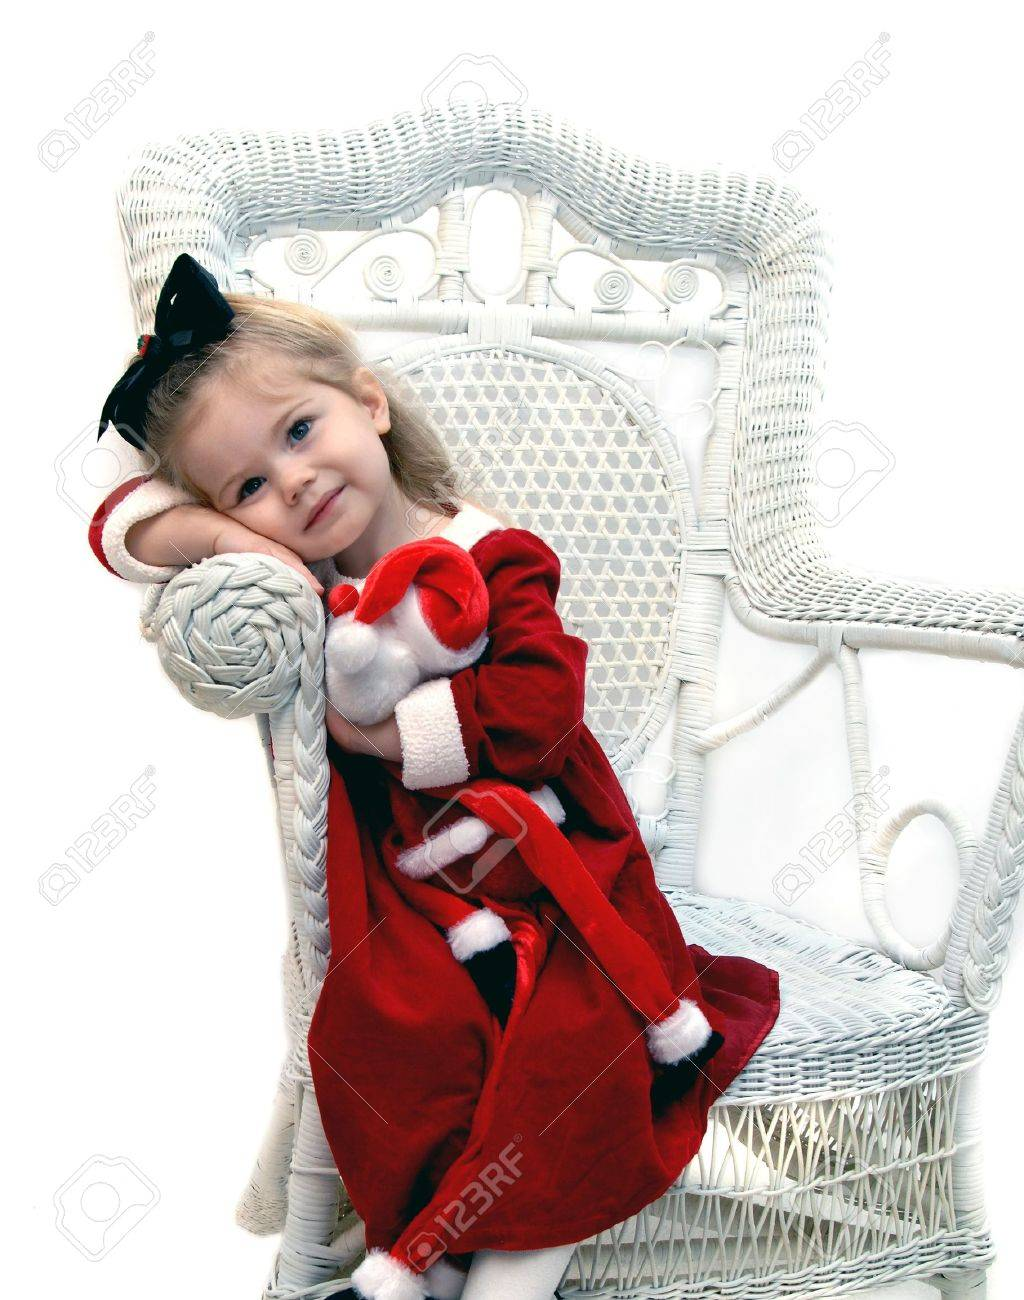 Little girl, clutching her Santa Claus doll, dreams of Christmas morning.  She is wearing a red dress and white leotards and sits in a white wicker chair. Stock Photo - 14865857